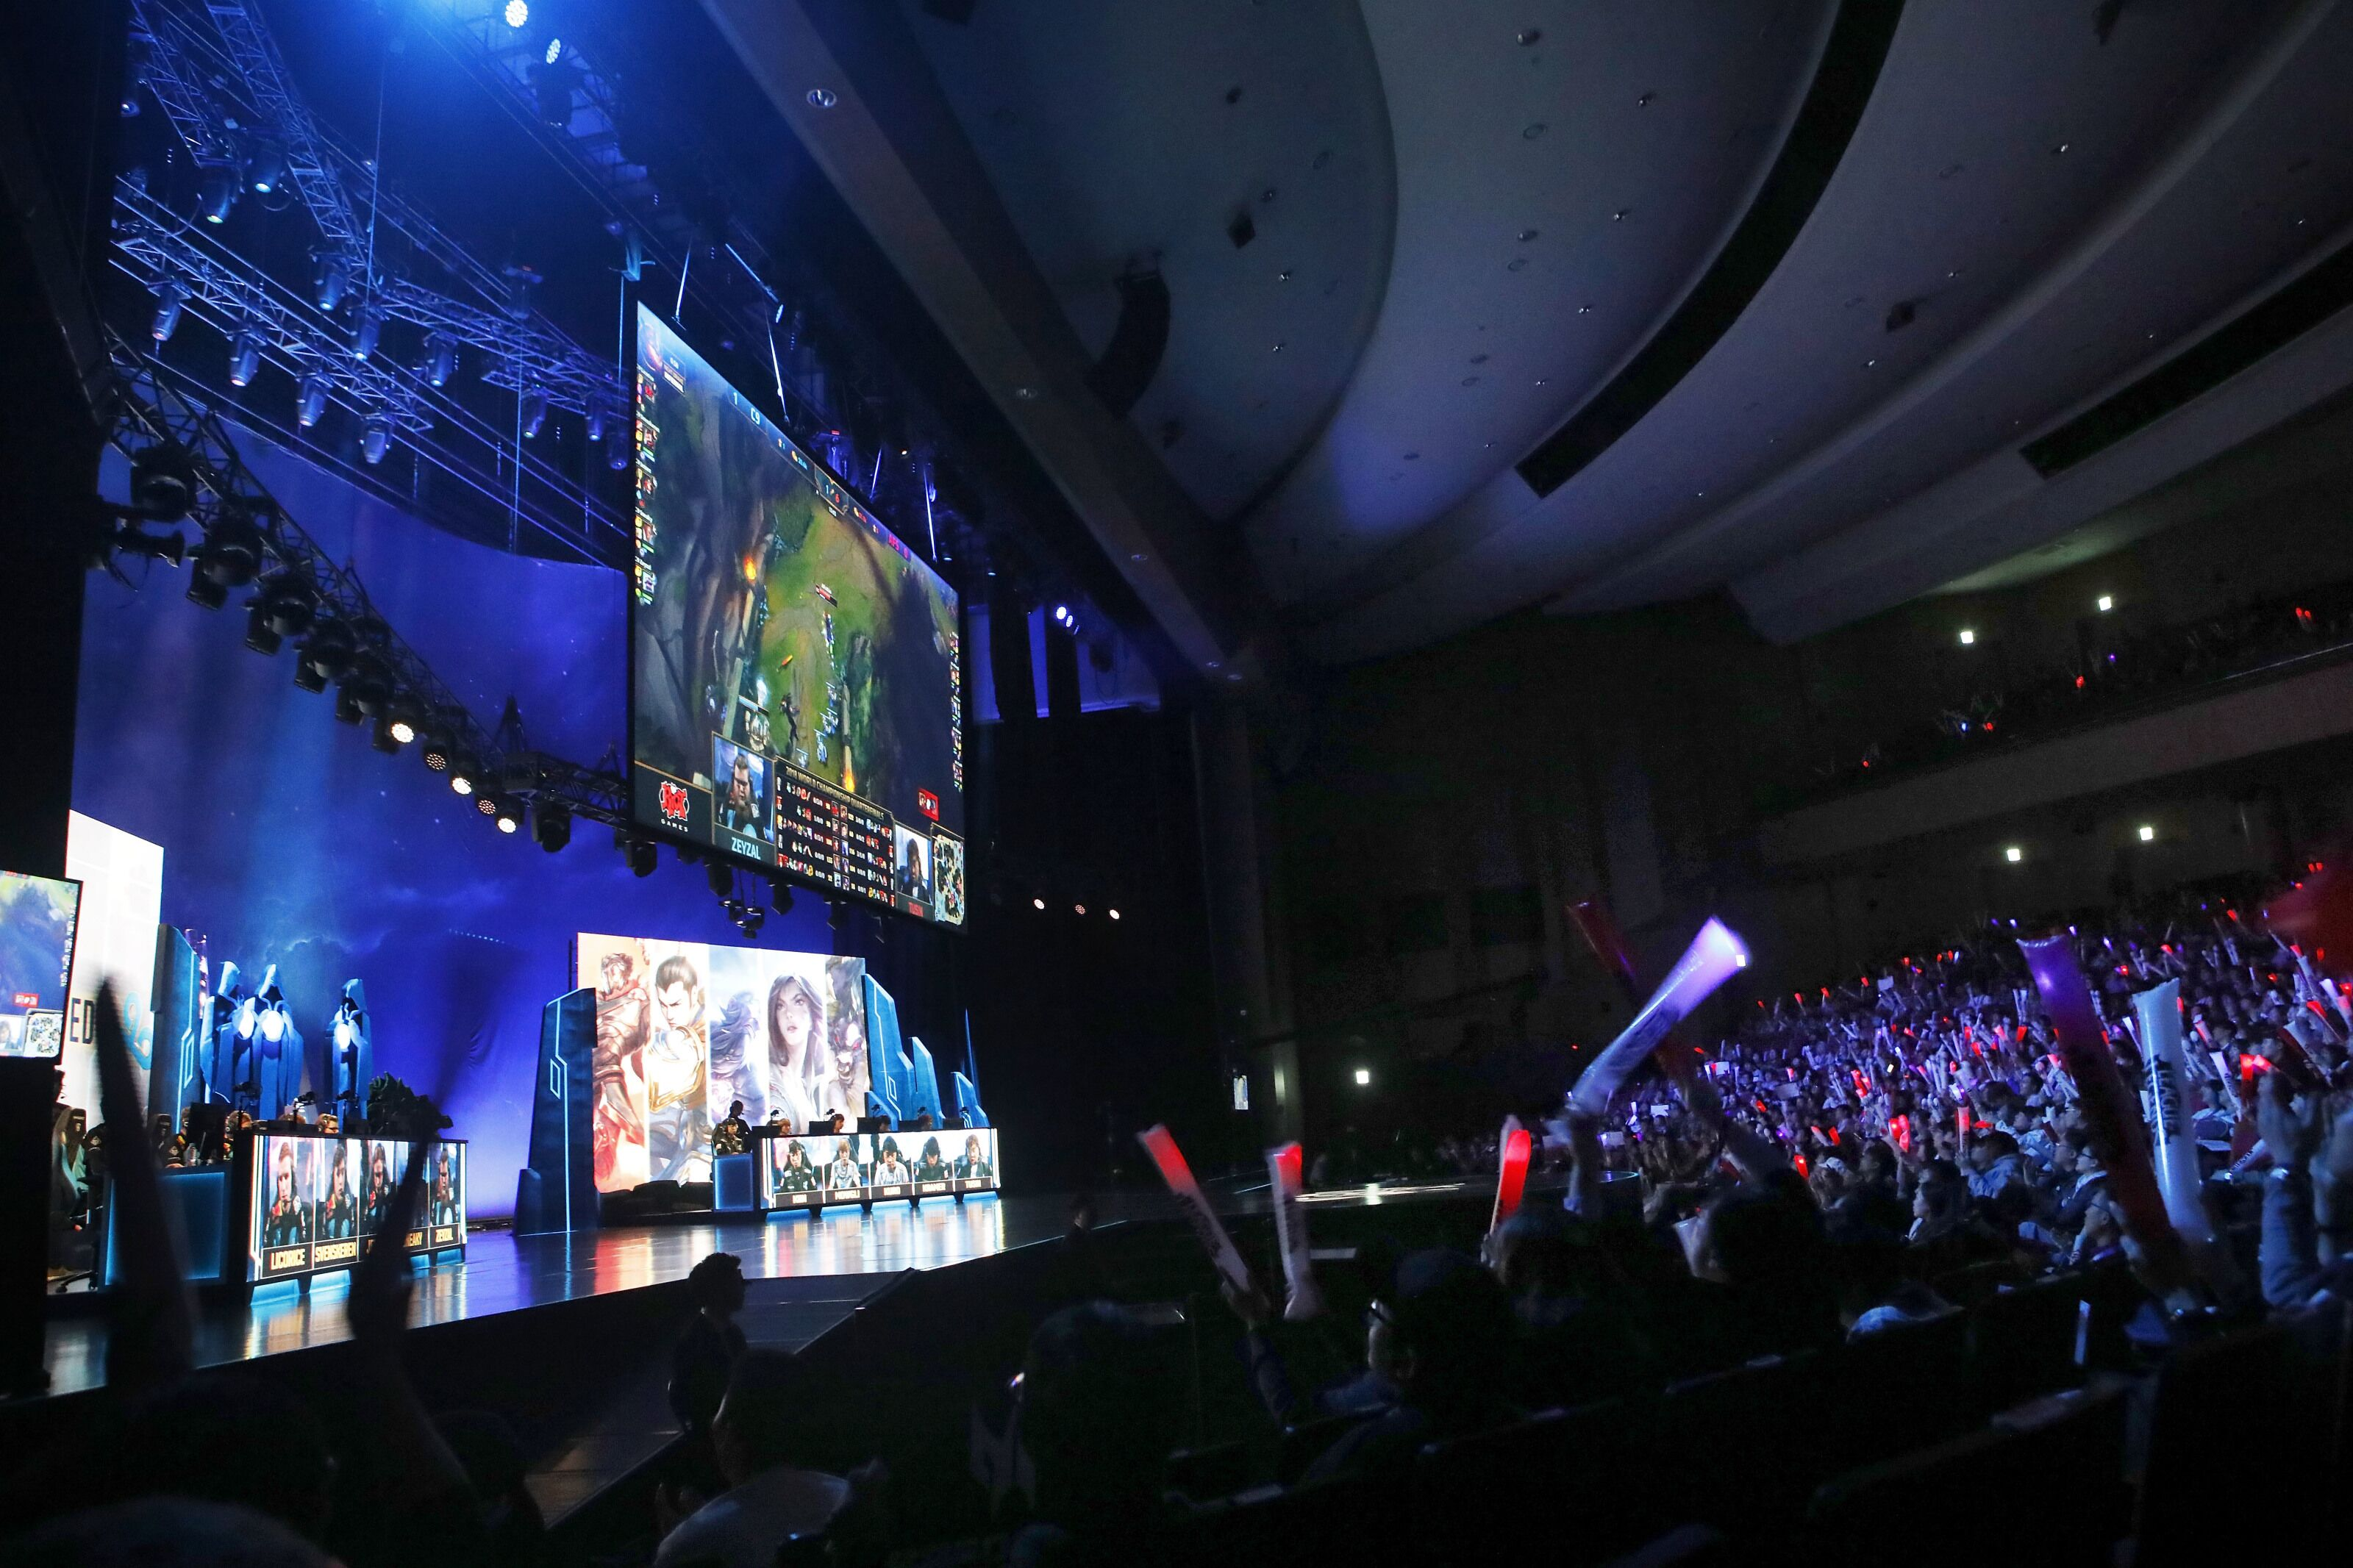 League of Legends 2019: What to expect with the start of the LCK